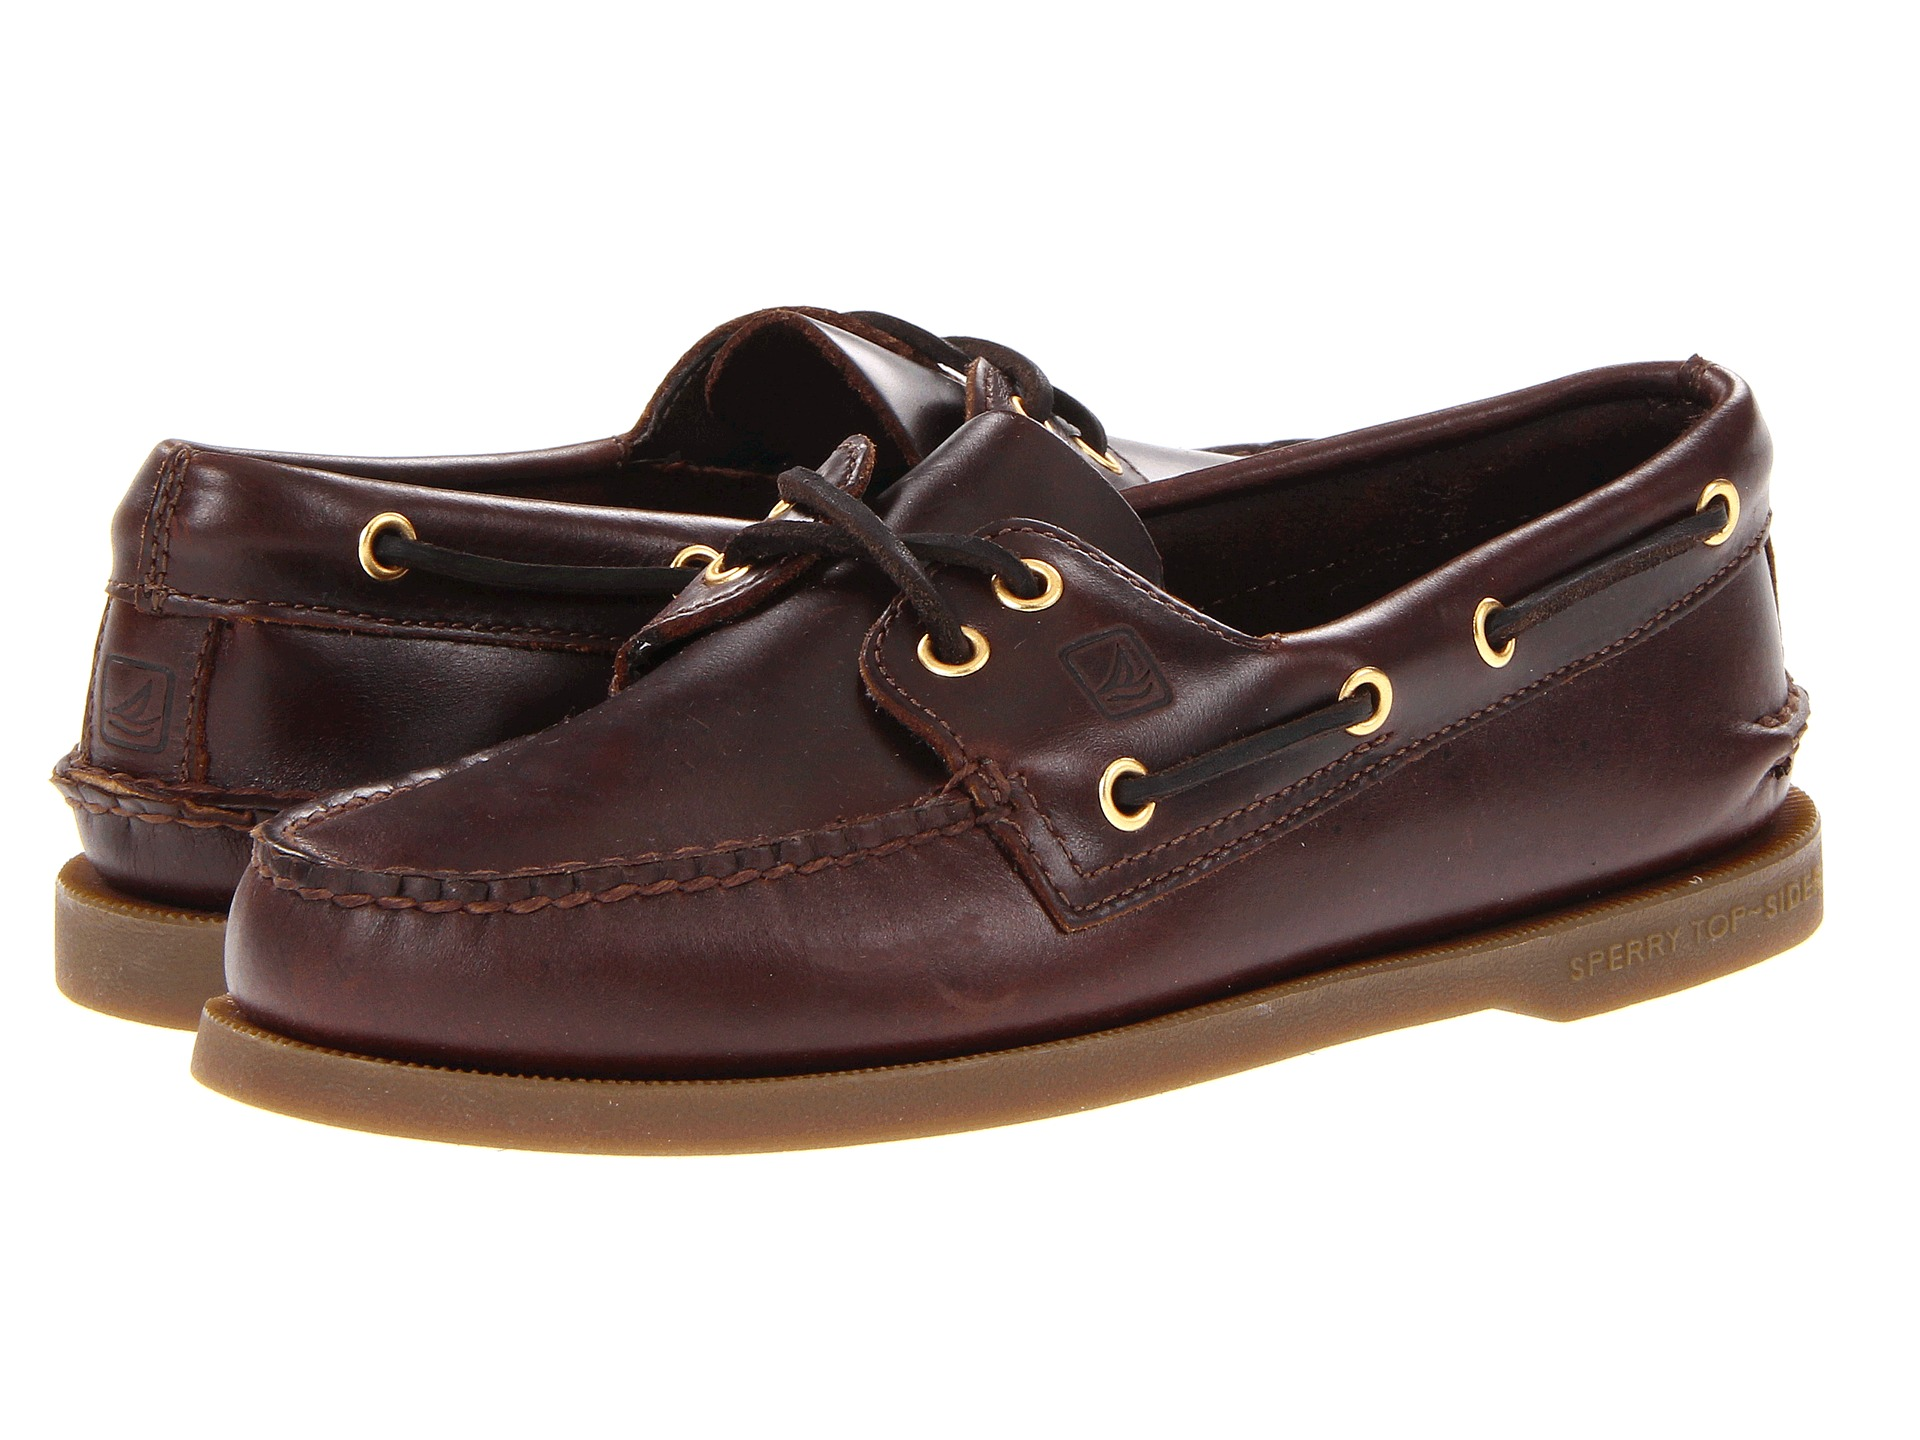 I like Sperry Top-Siders. I've been buying them for quite a few years now. I've always been happy with their quality and this time is no different.